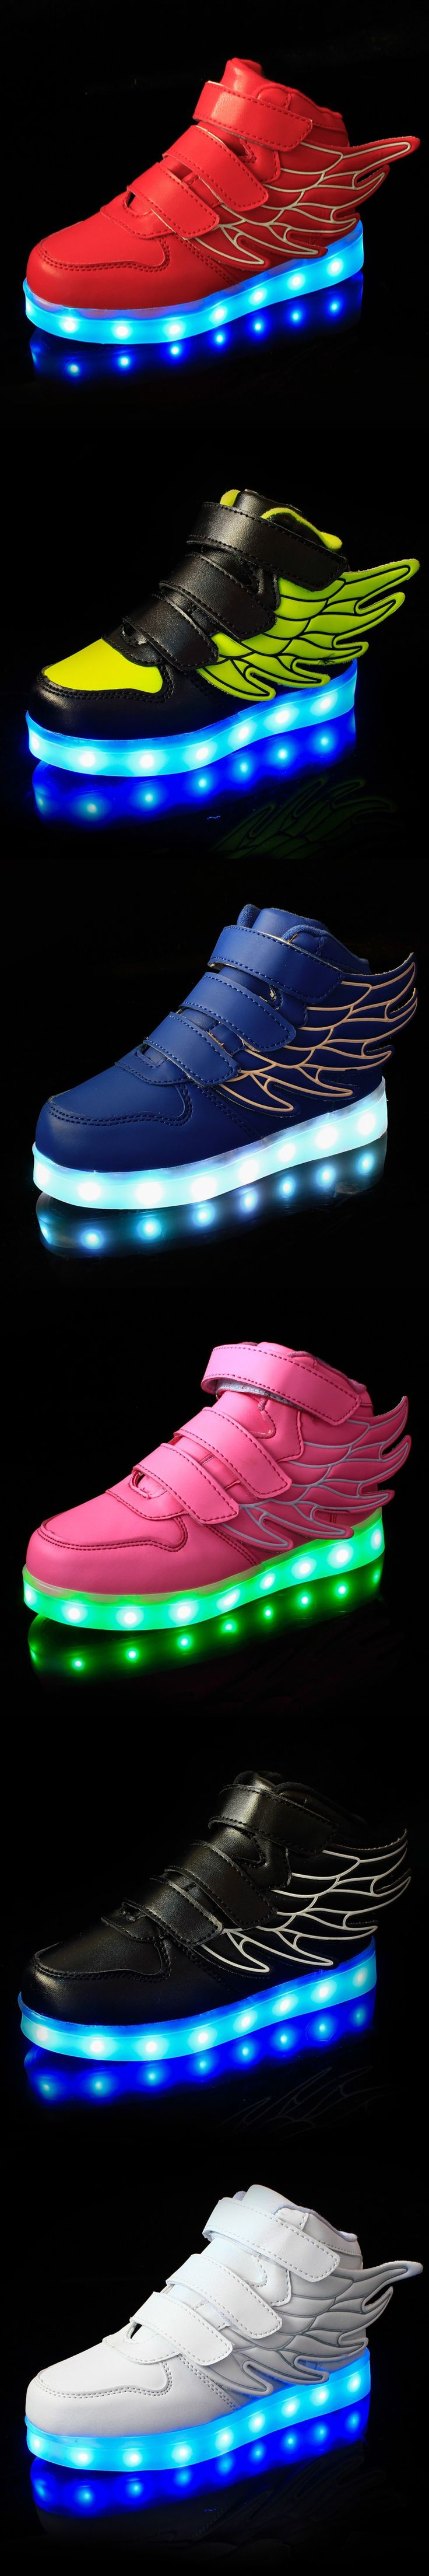 2016 New European fashion cute LED lighting children shoes hot sales Lovely kids sneakers high quality cool boy girls boots $22.98